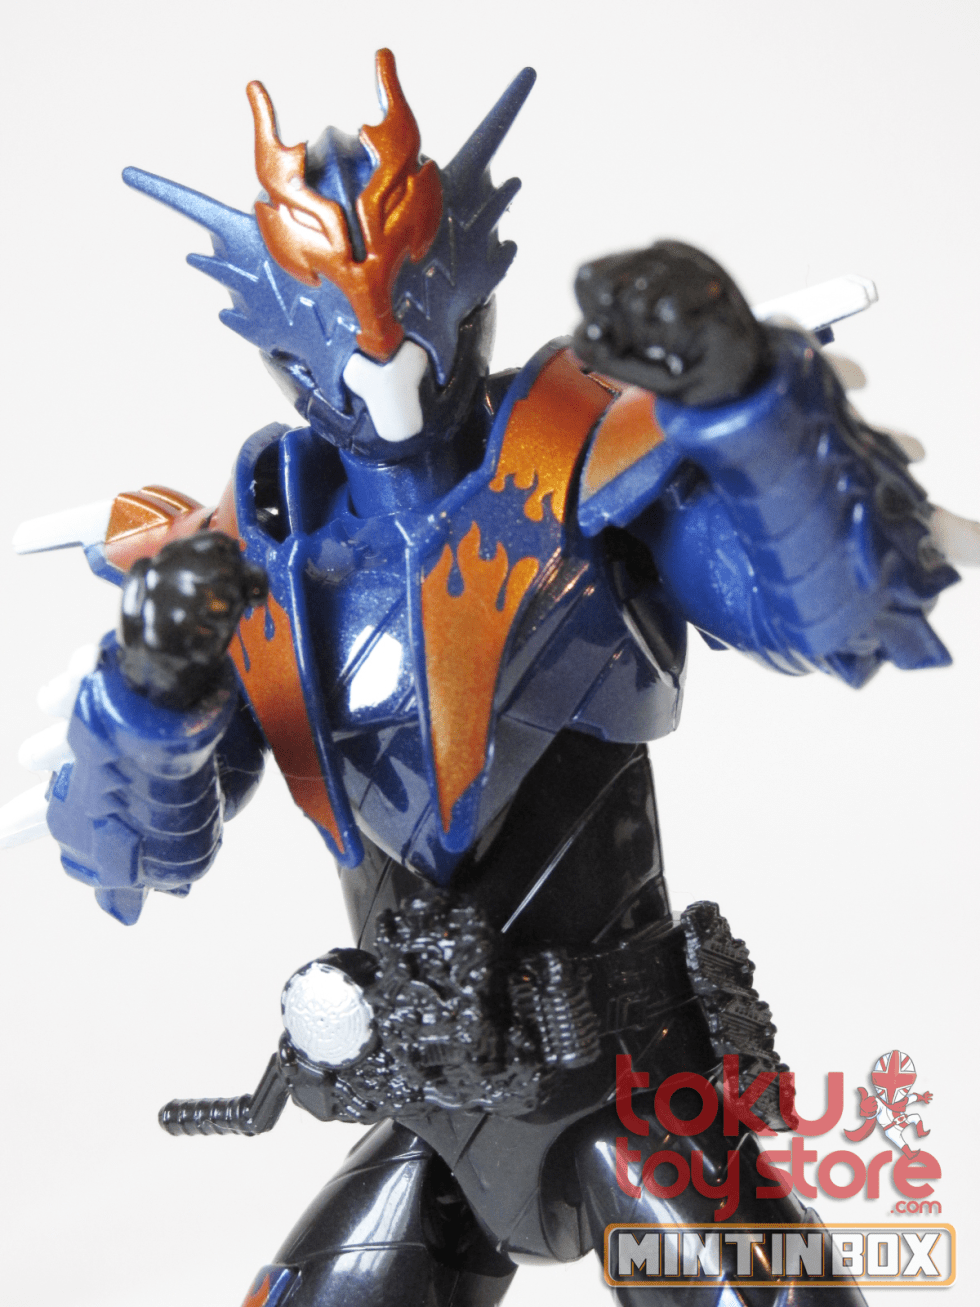 RKF_Cross-Z_Toku Toy Store (4)